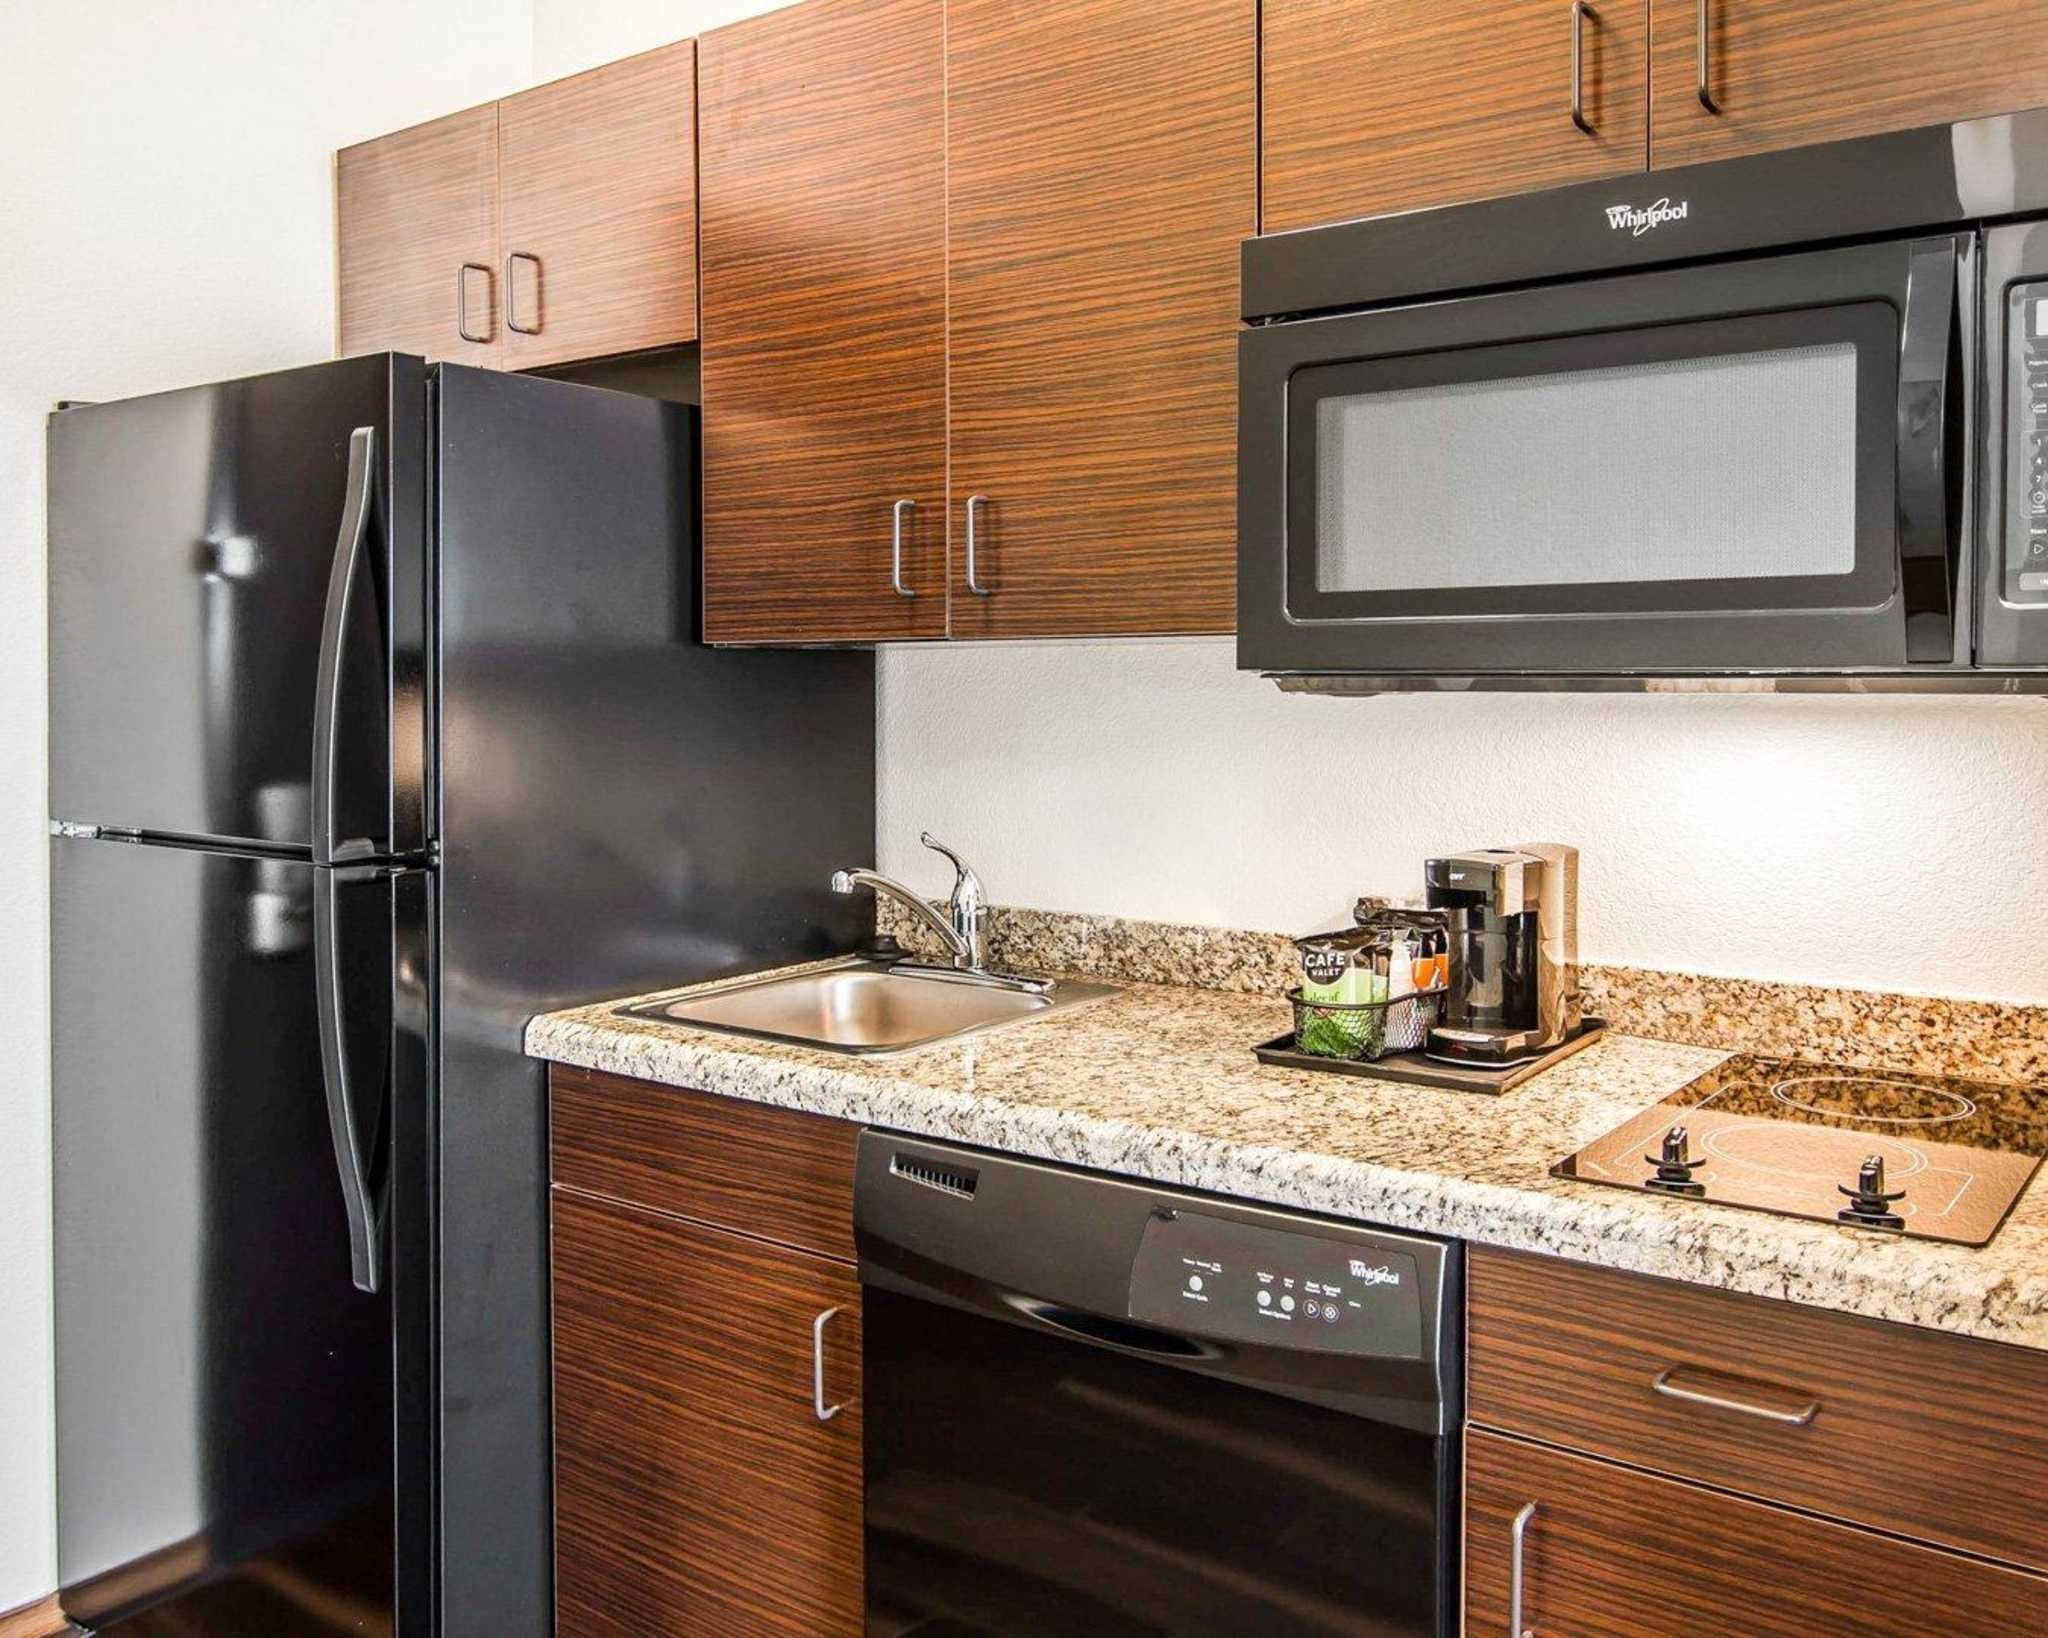 MainStay Suites image 10